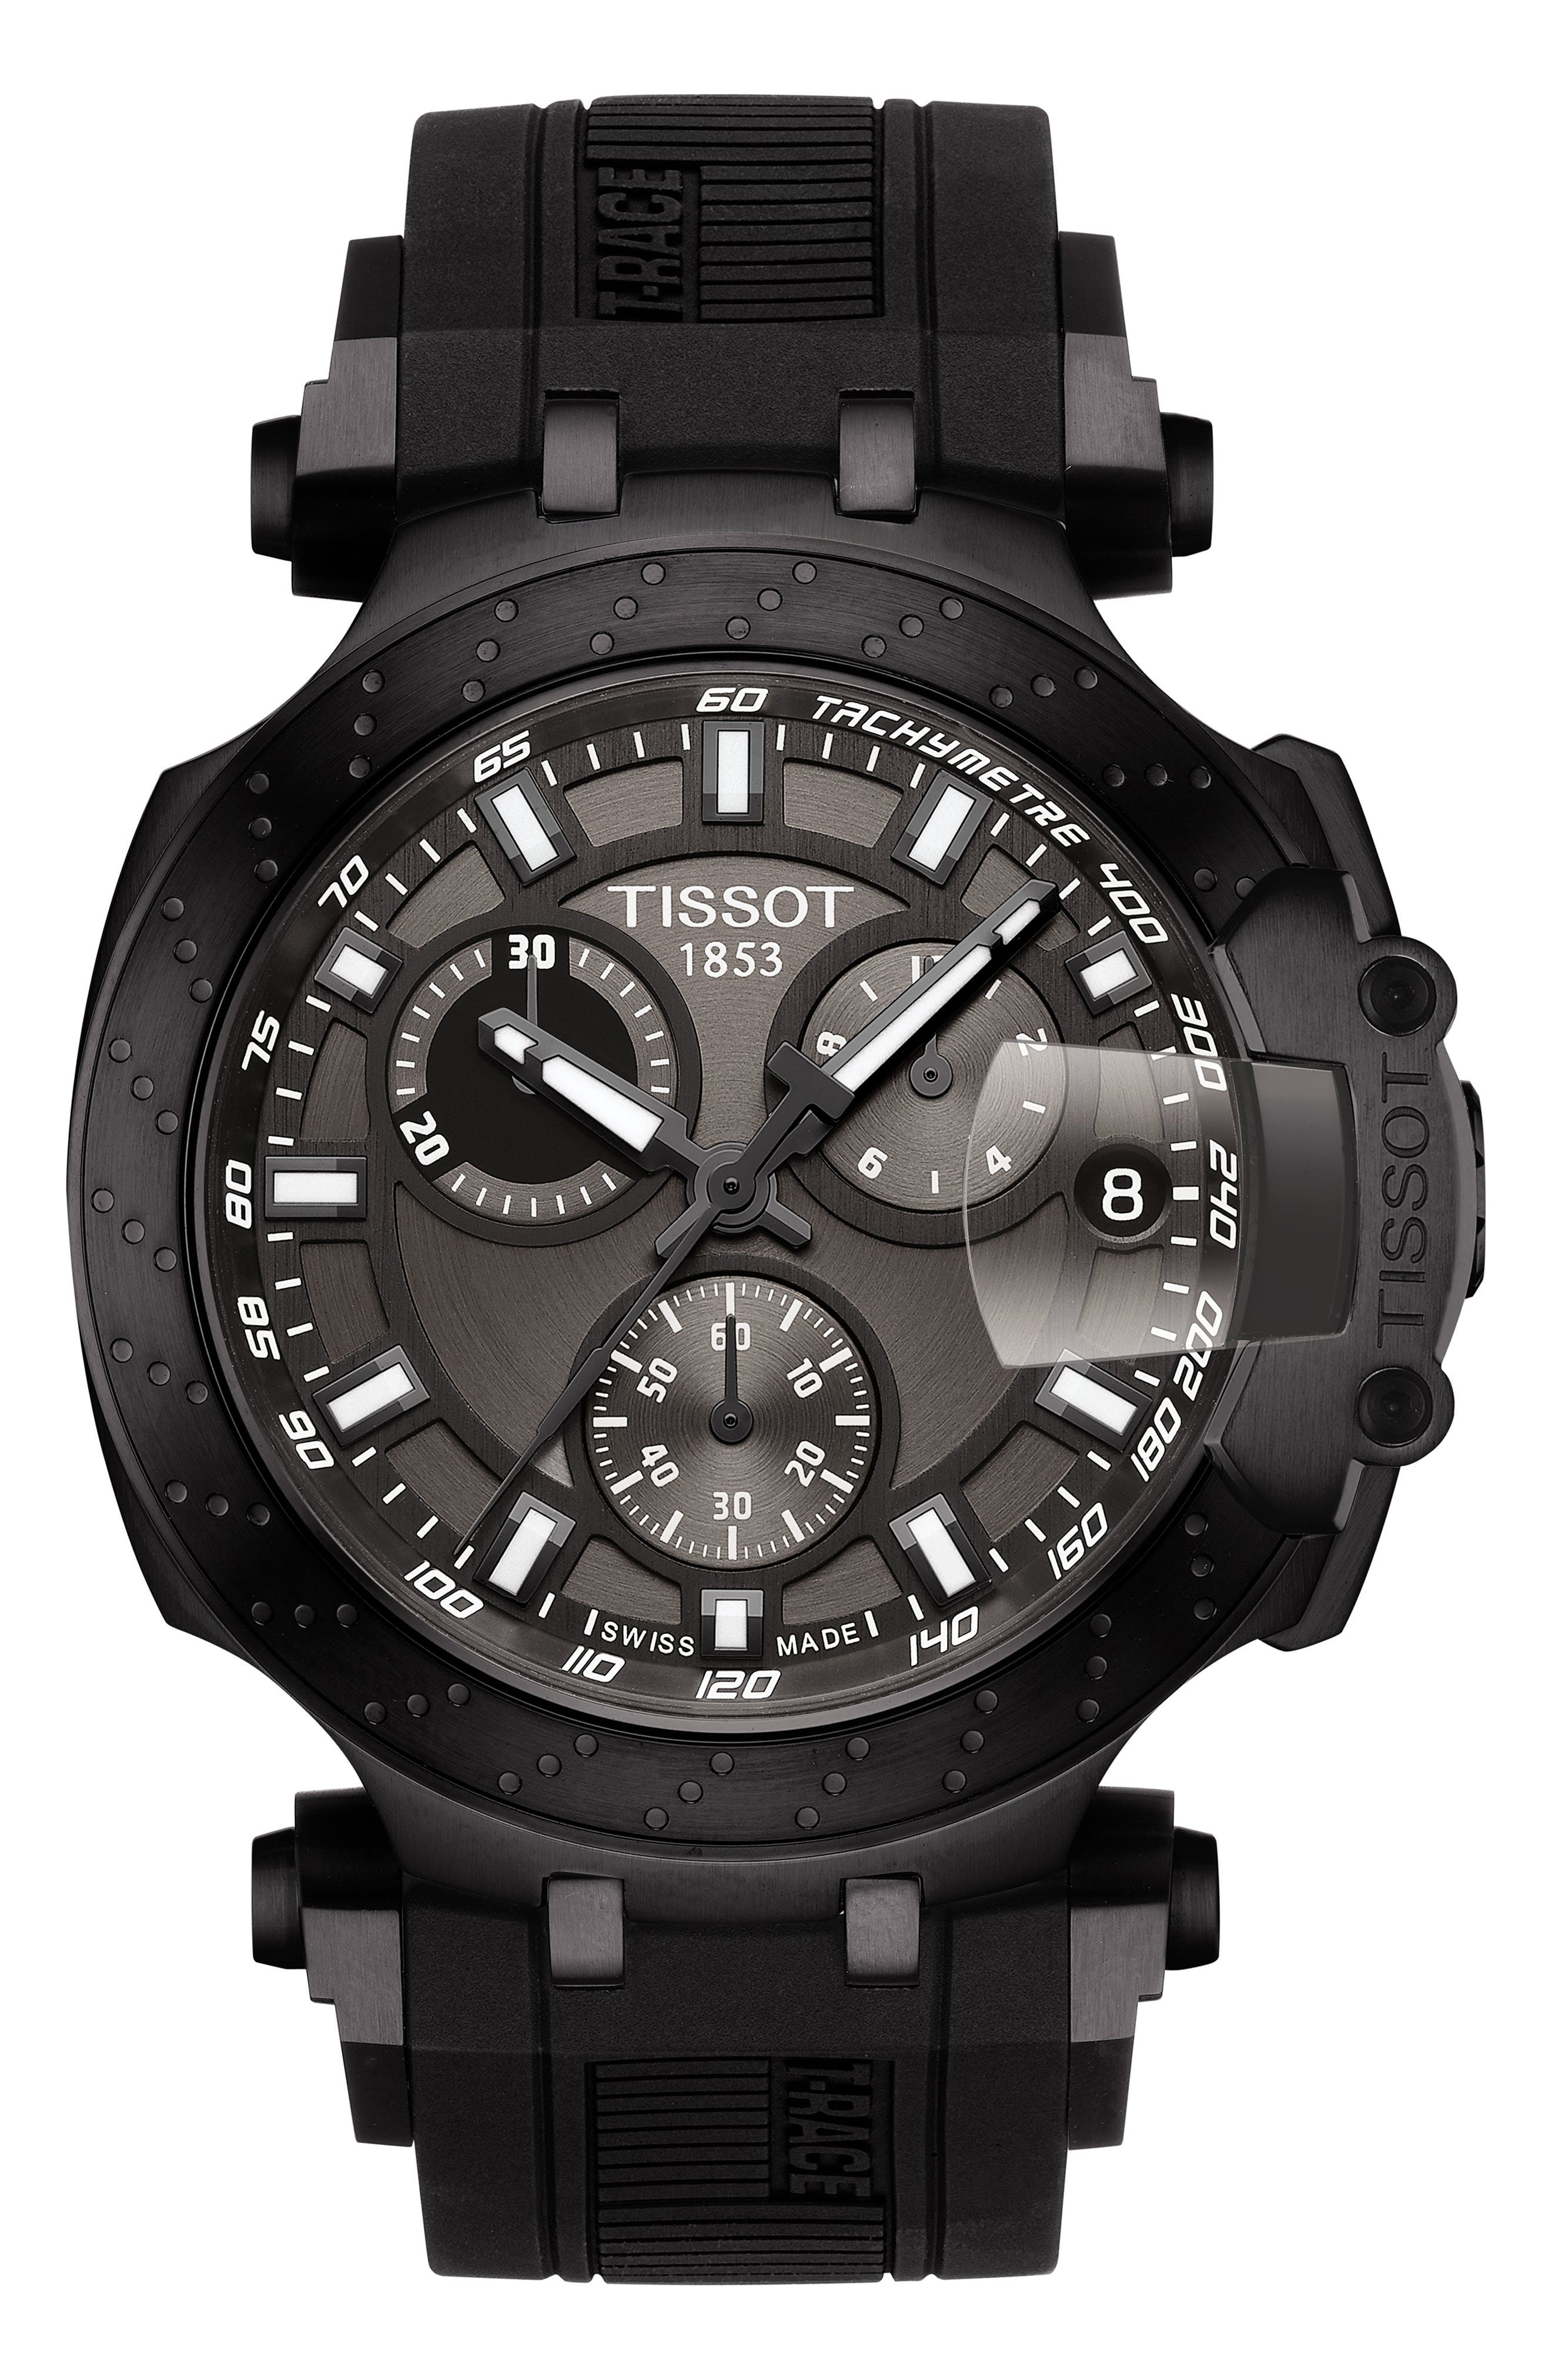 TISSOT T-Race Chronograph Silicone Strap Watch, 48mm, Main, color, BLACK/ ANTHRACITE/ GREY